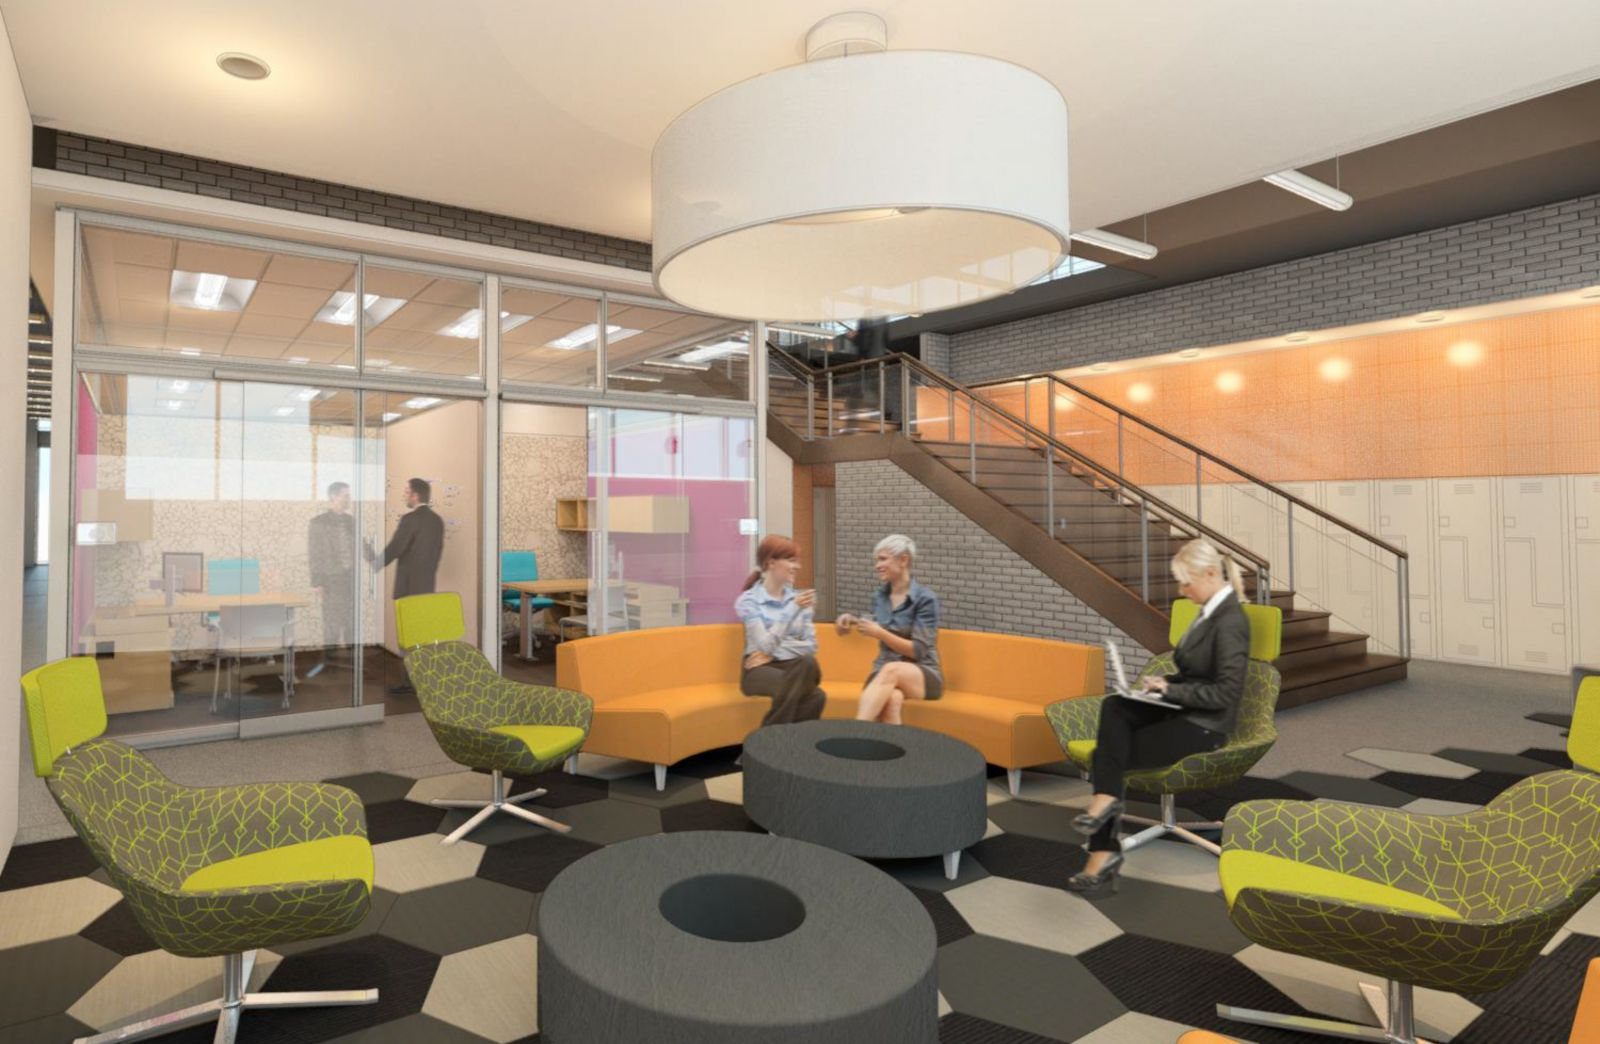 Isu interior design seniors named finalists in iida idea student competition iowa state Top universities for interior design